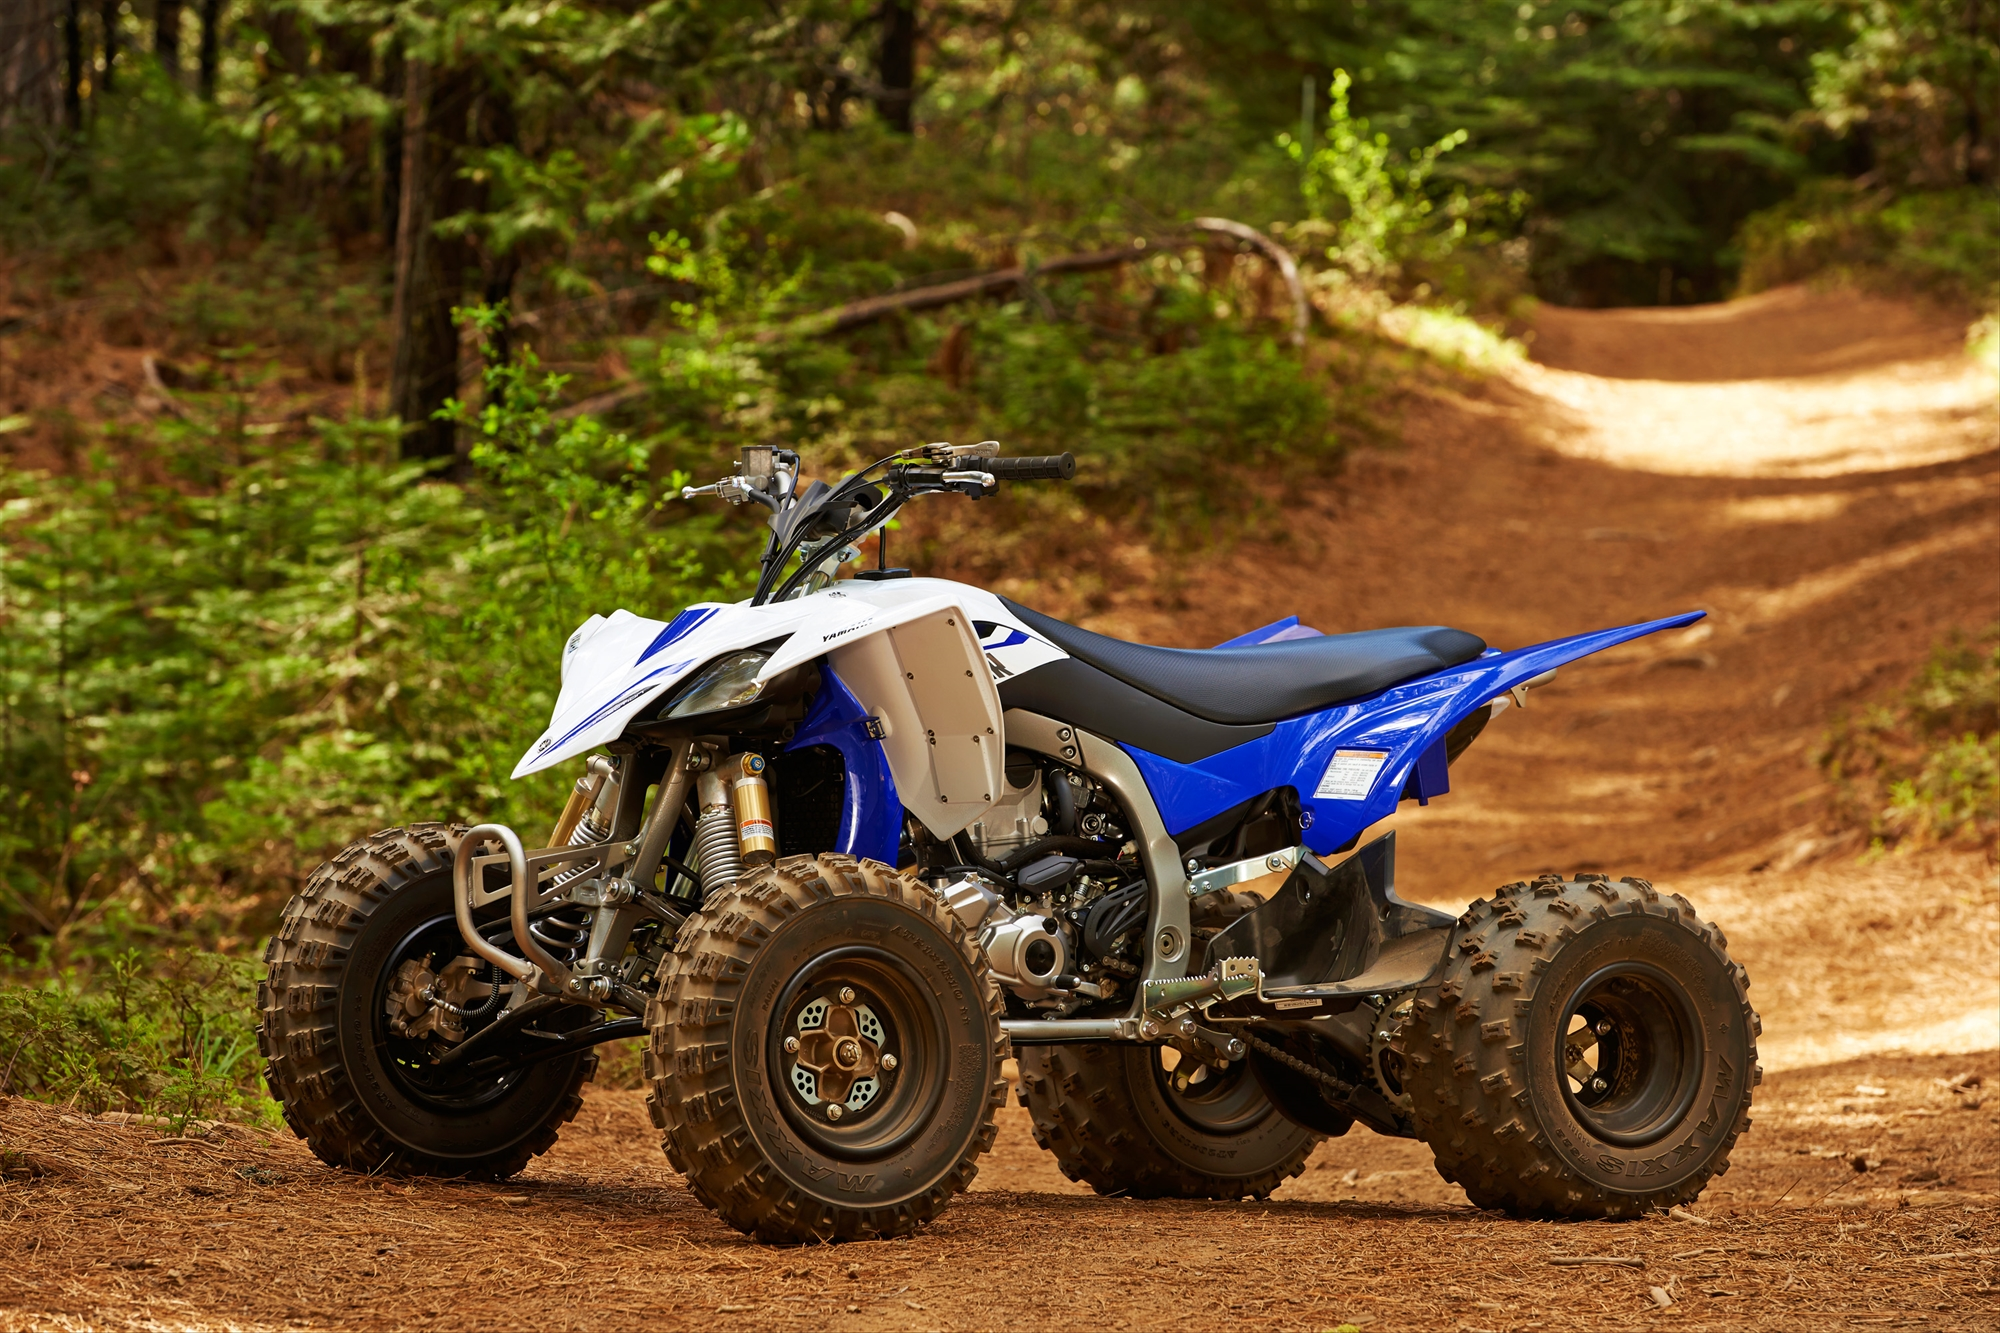 Image Ddc as well Yamaha Yfz R Se together with All New Yamaha Yfz Atv For Kids To as well S L in addition Img V X. on yamaha yfz 450 atv